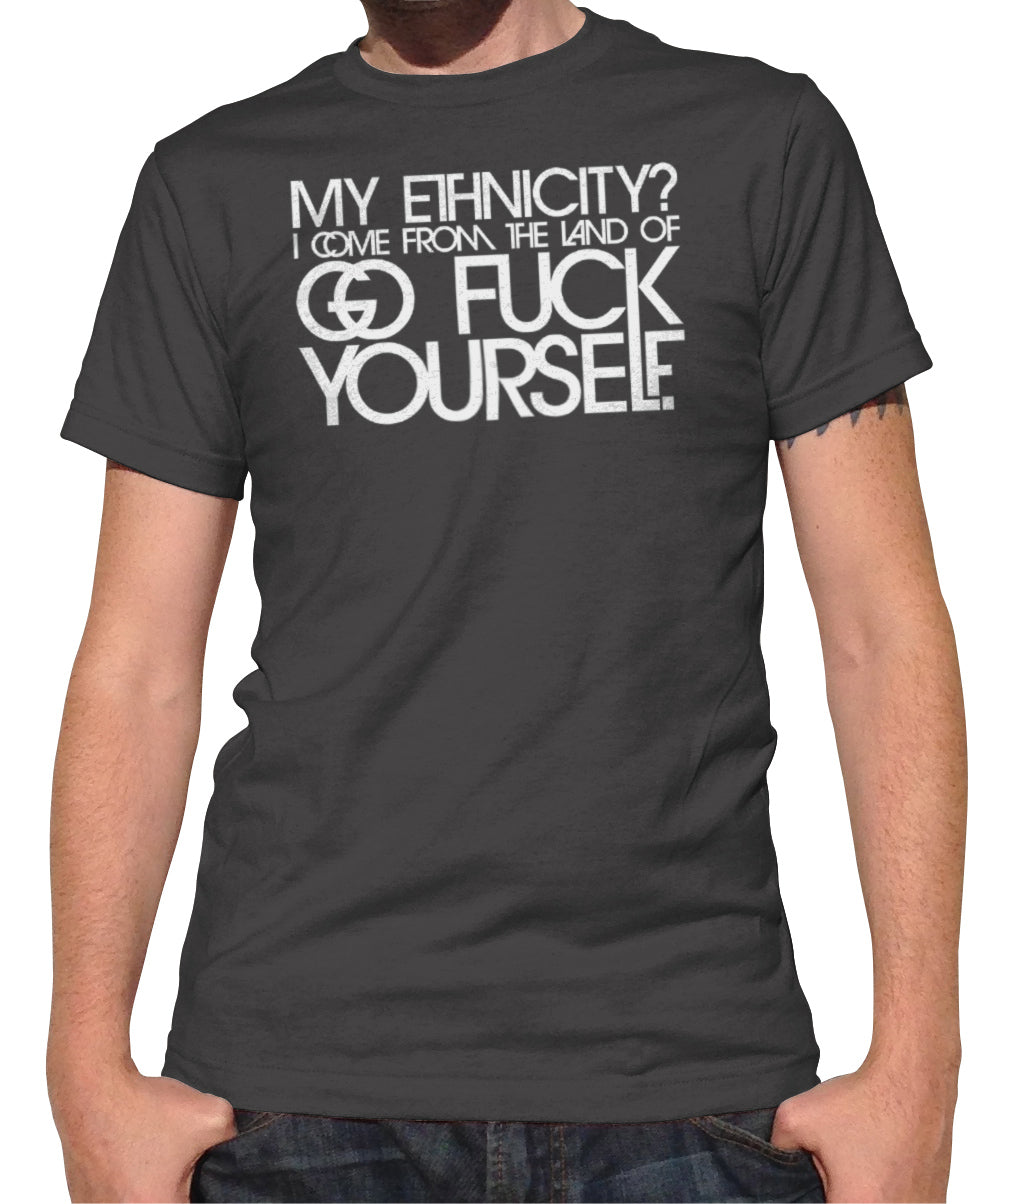 Men's My Ethnicity? I Come From The Land Of... T-Shirt